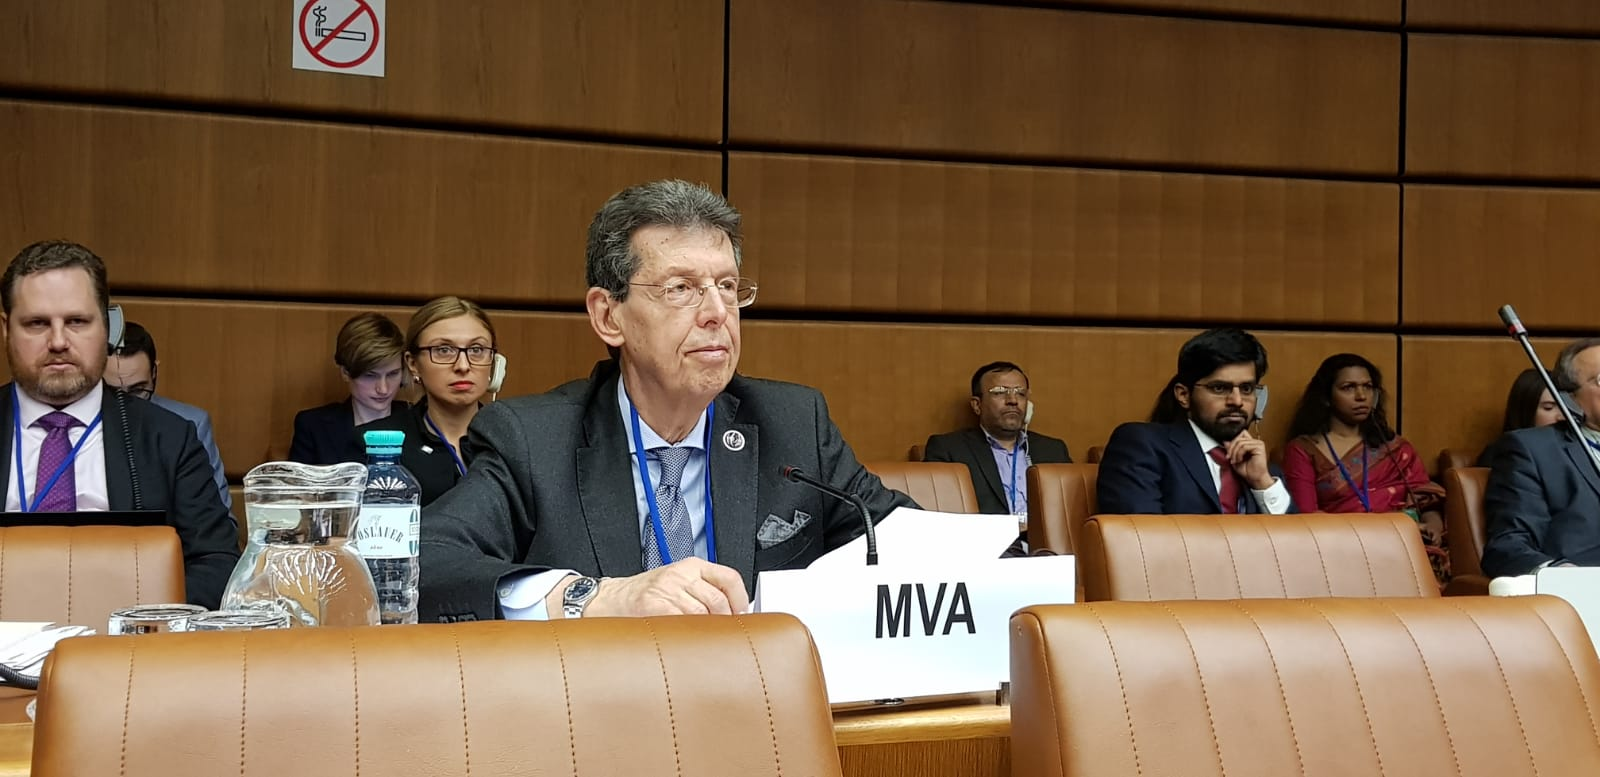 Press Release – Moon Village Association (MVA) first participation in the UN COPUOS Scientific and Technical Subcommittee